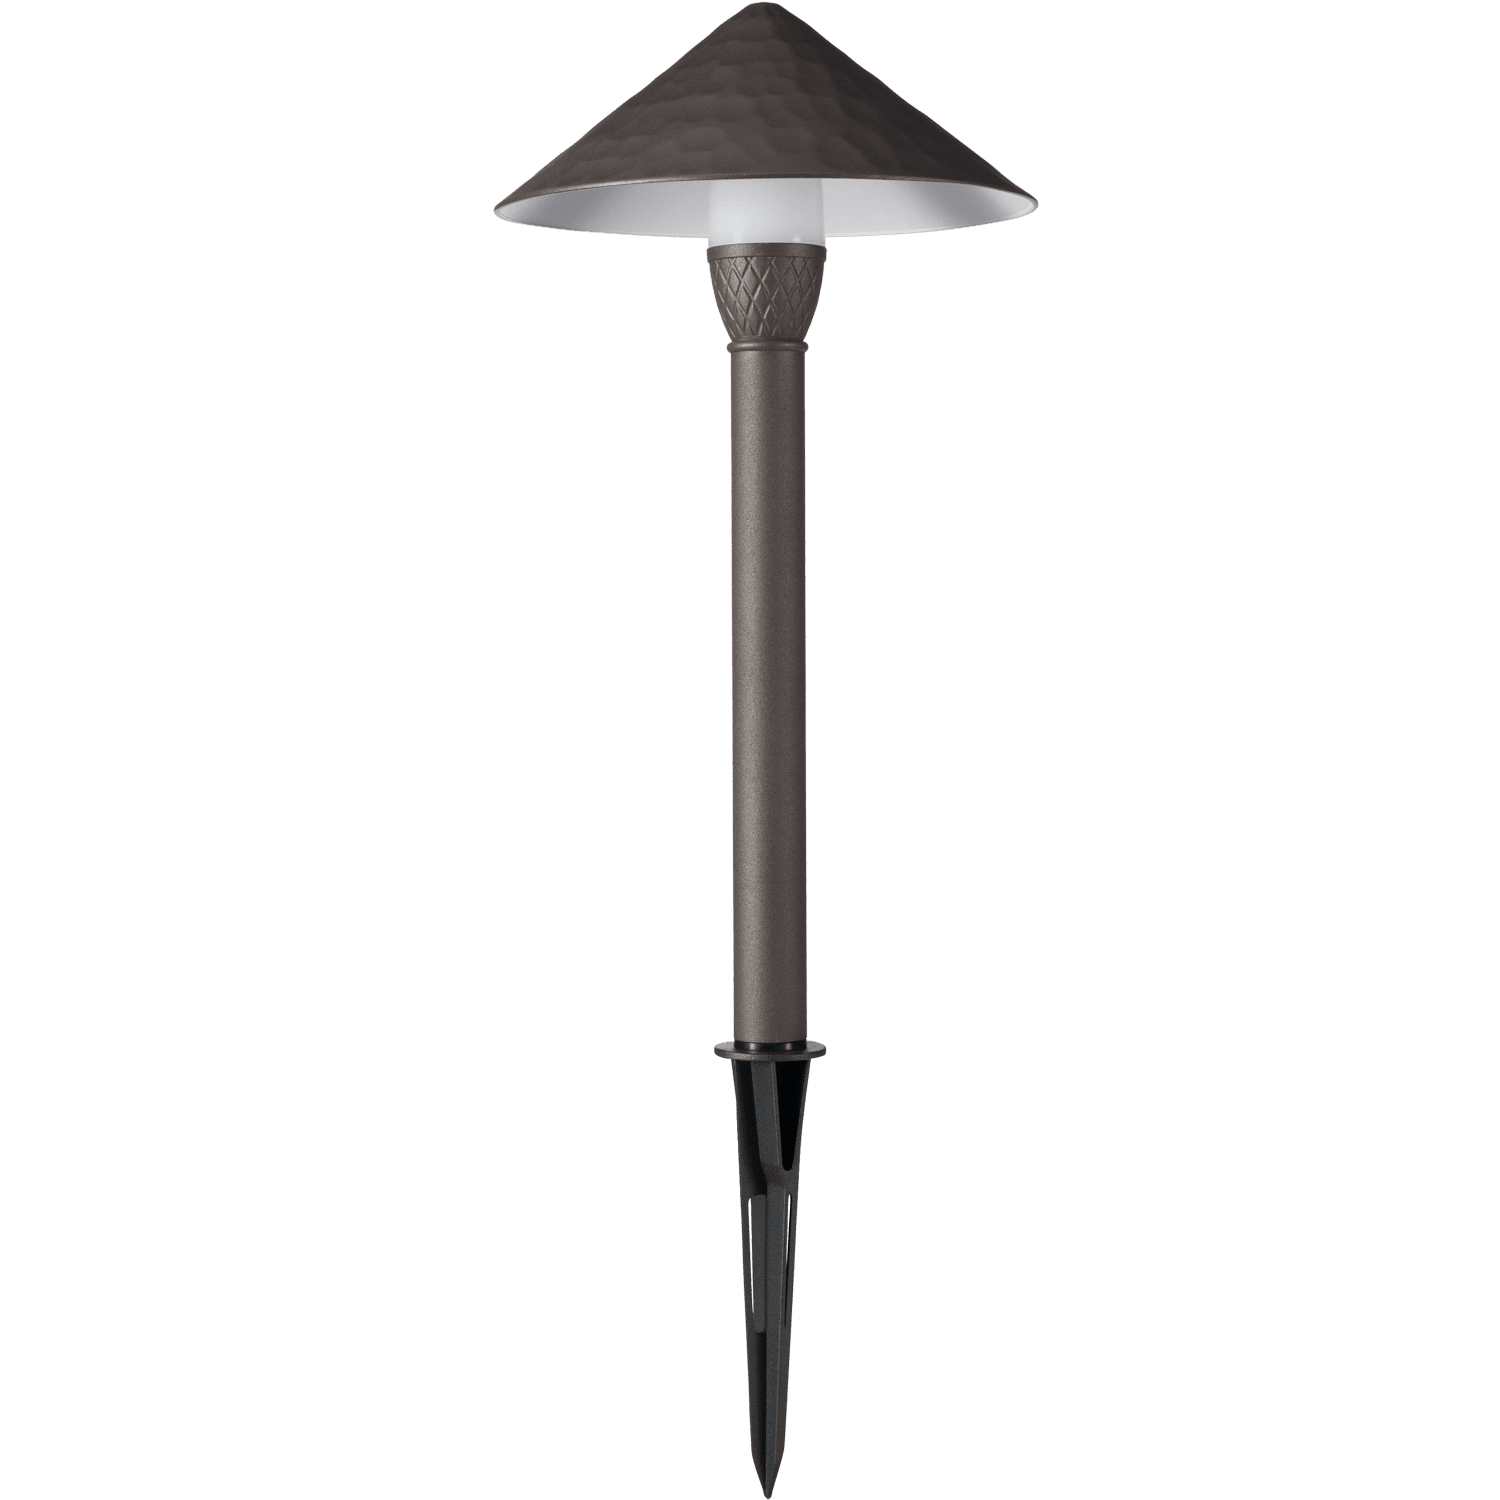 Better Homes and Gardens Alston Outdoor QuickFIT LED Pathway Light by Jiawei Technology